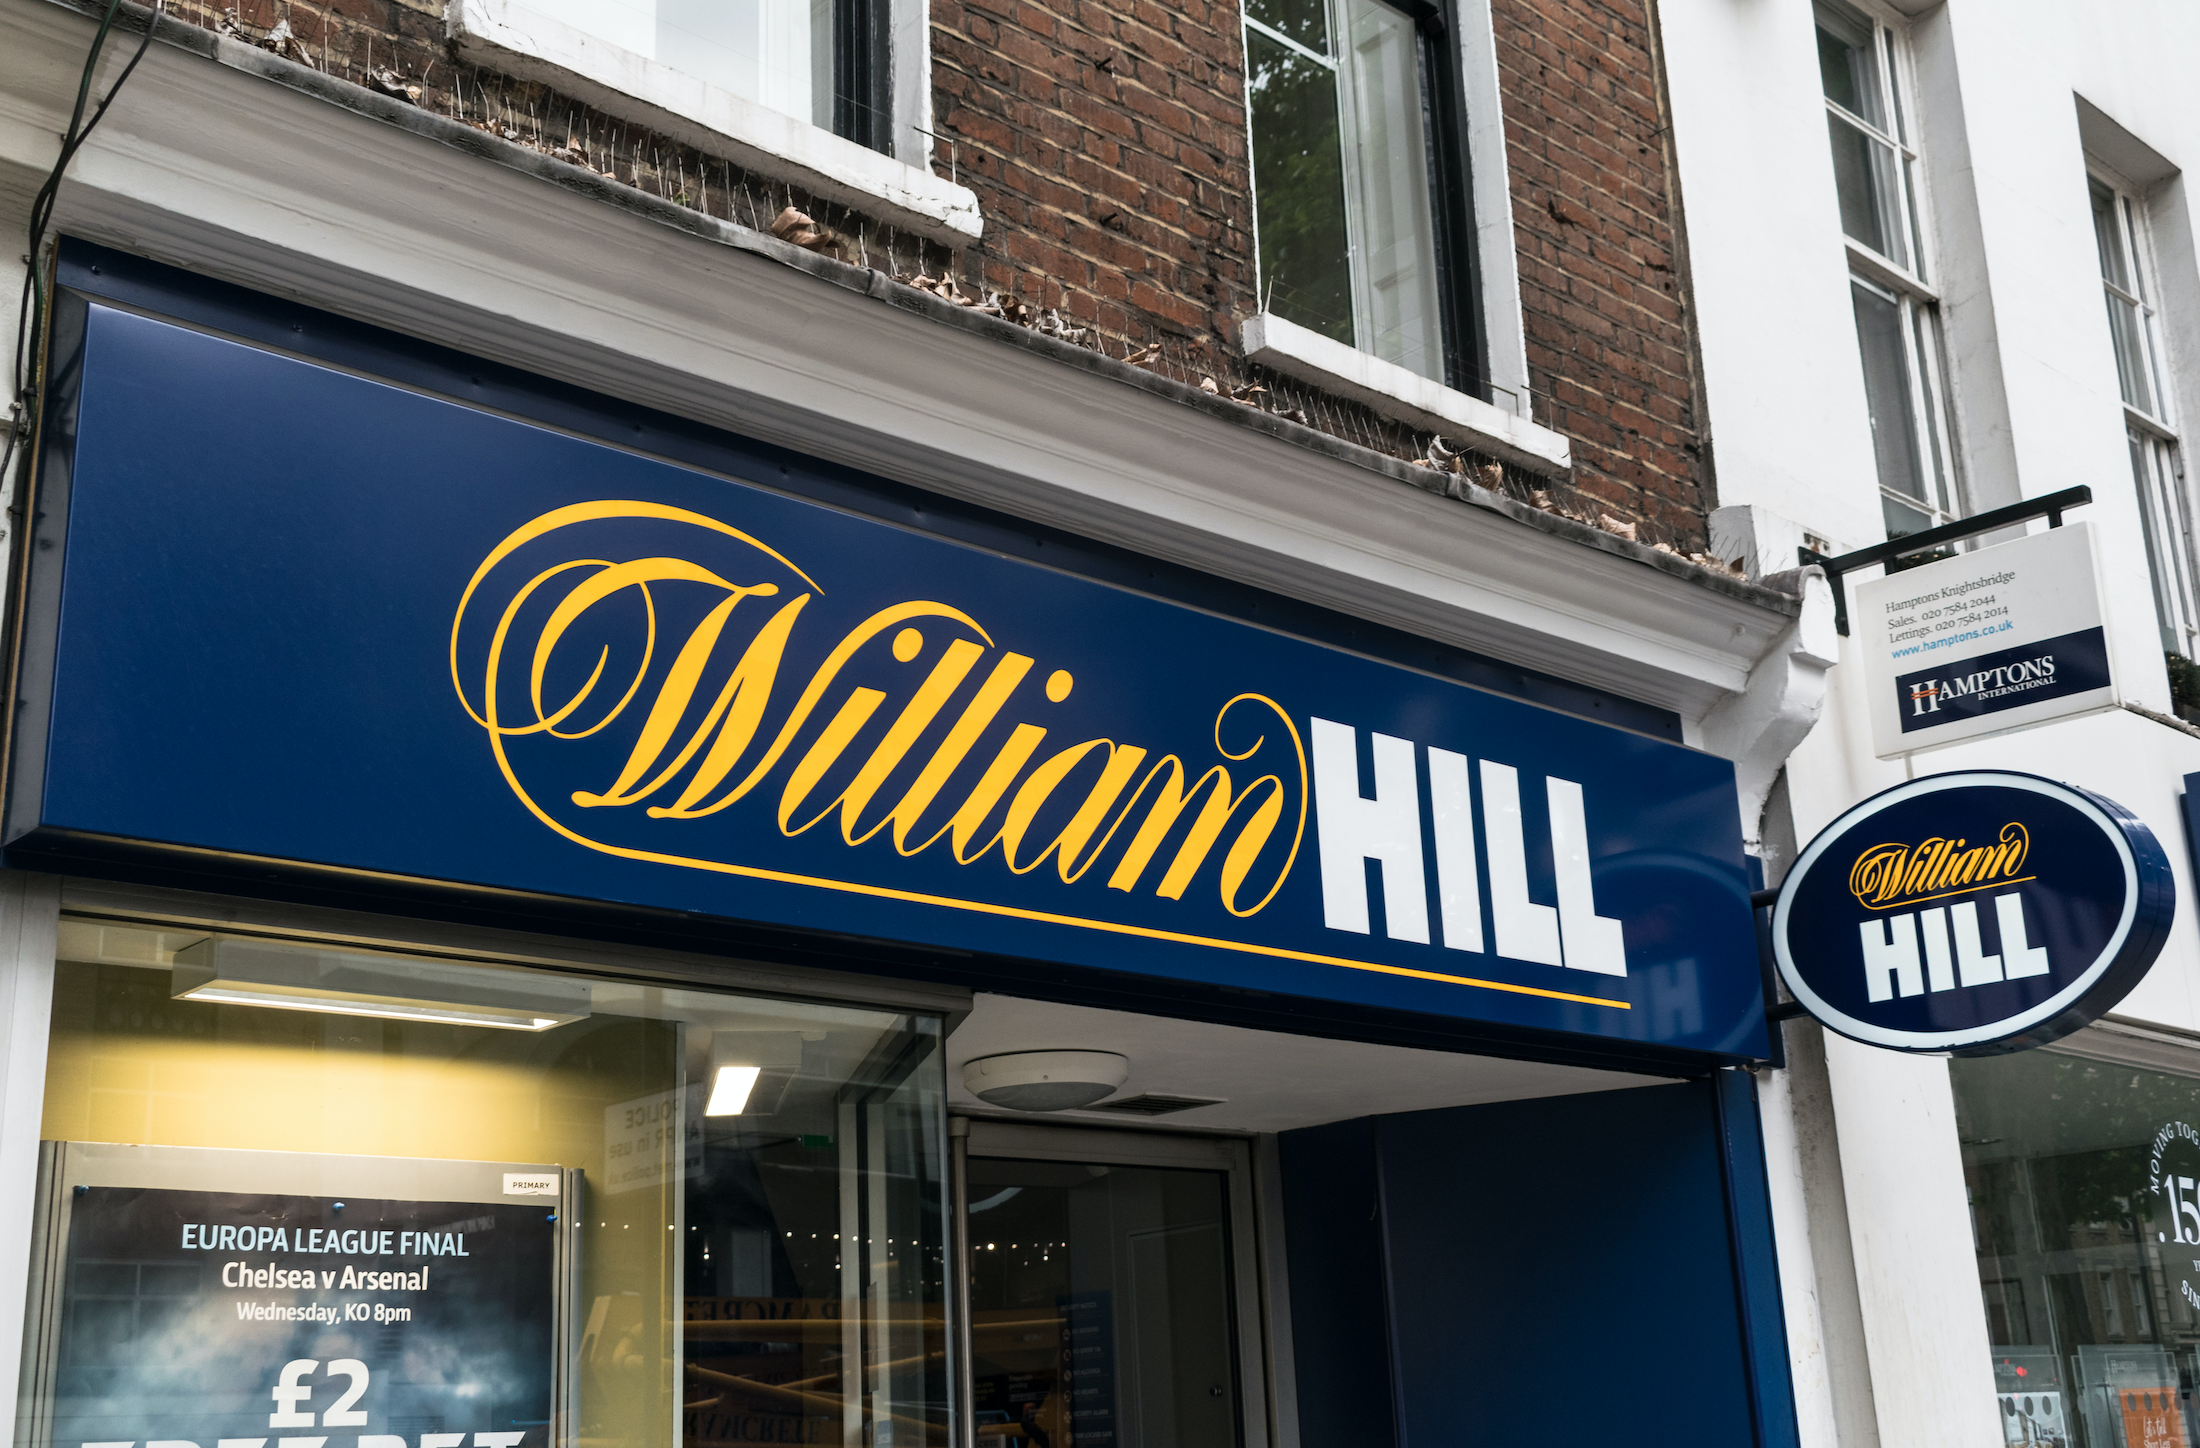 Caesars Prepare Sale of William Hill's non-American Assets